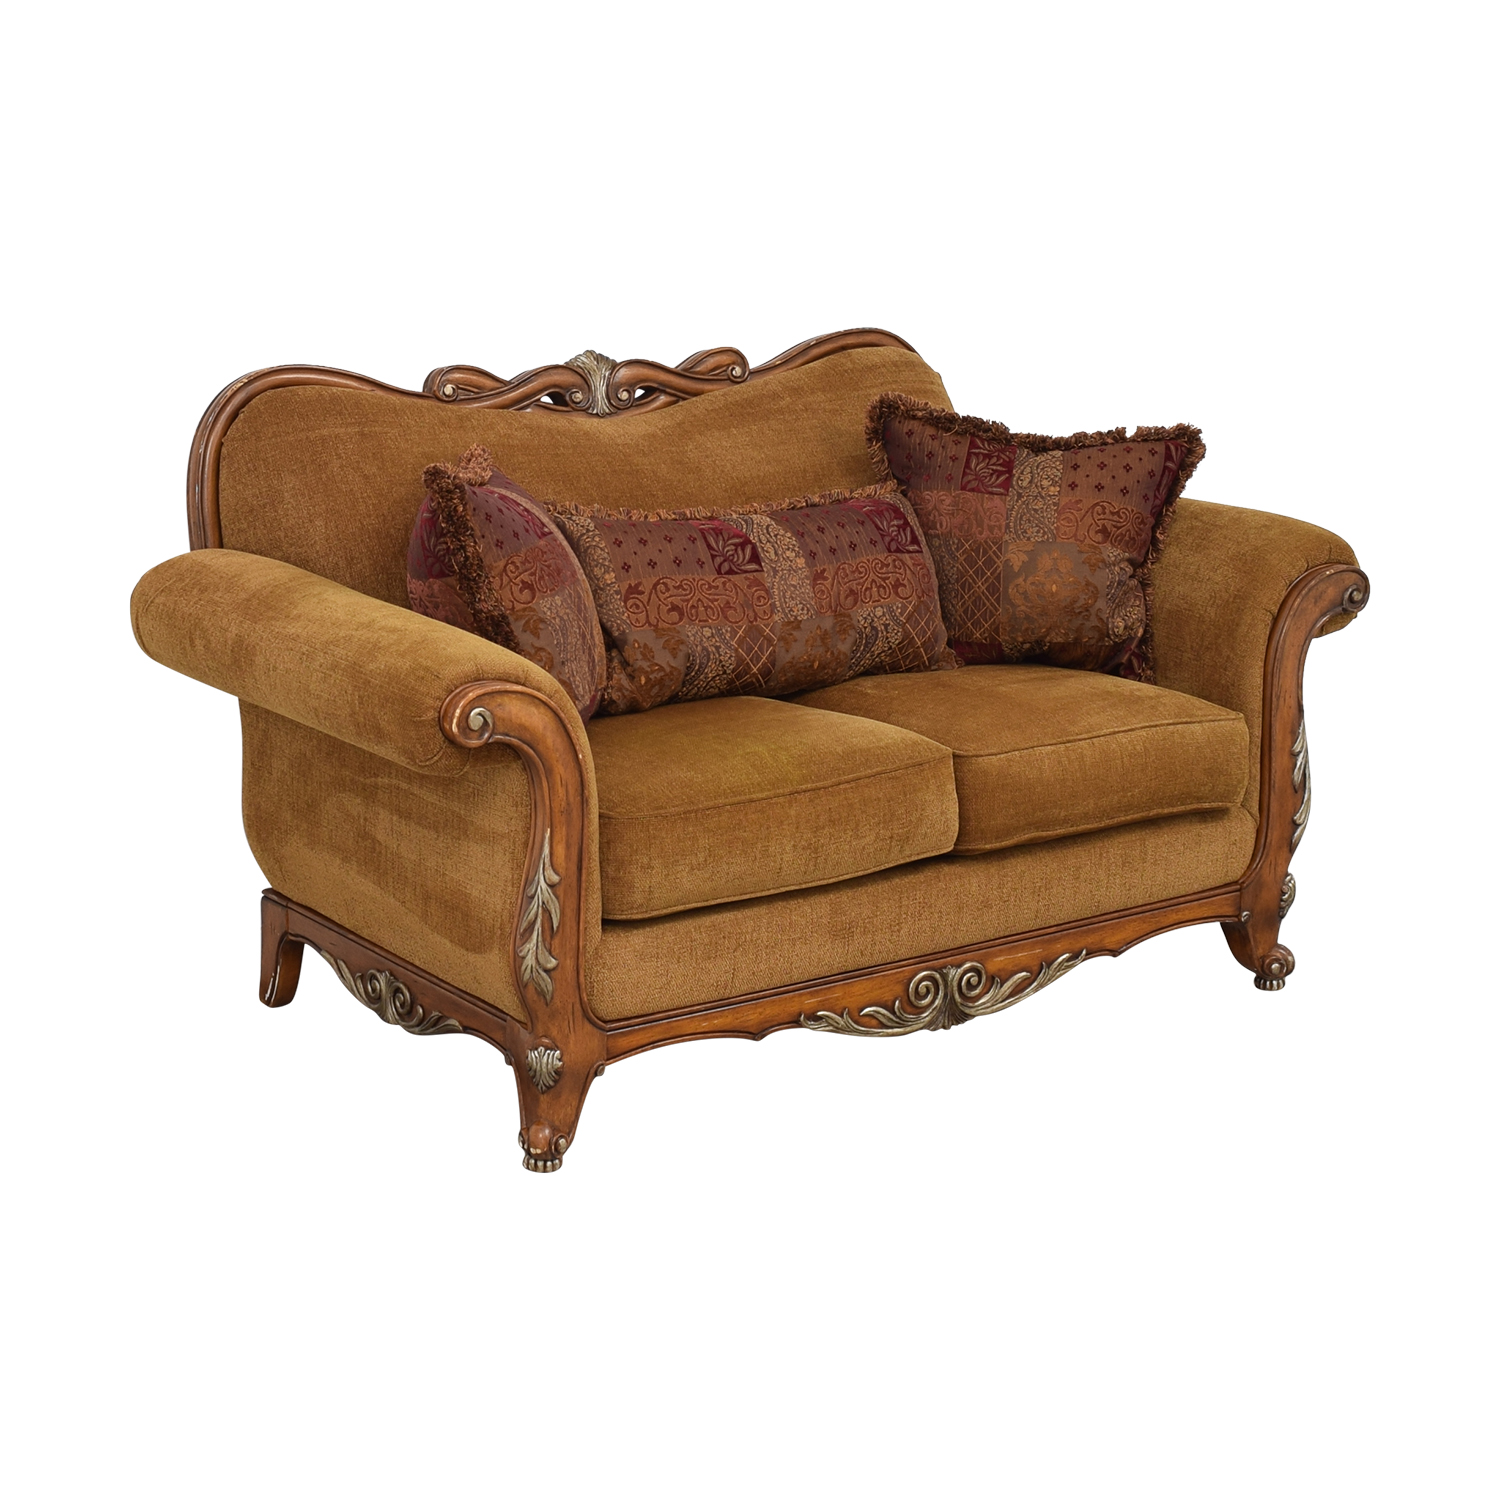 Cindy Crawford Home Cindy Crawford Home Loveseat second hand